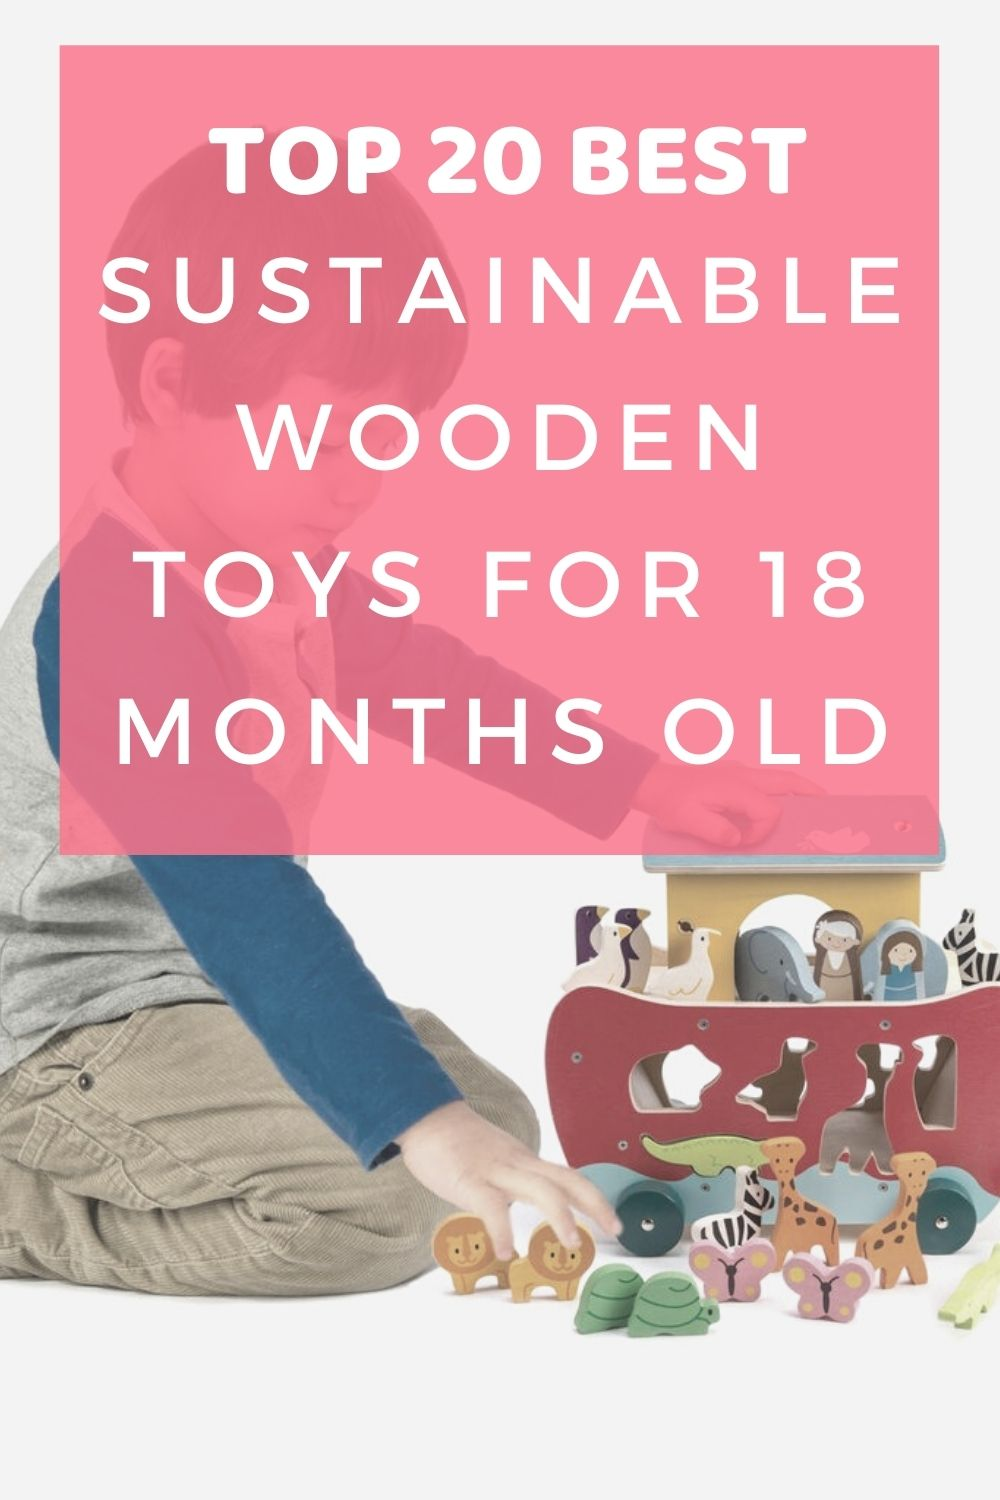 Wooden Toys for 18 months old